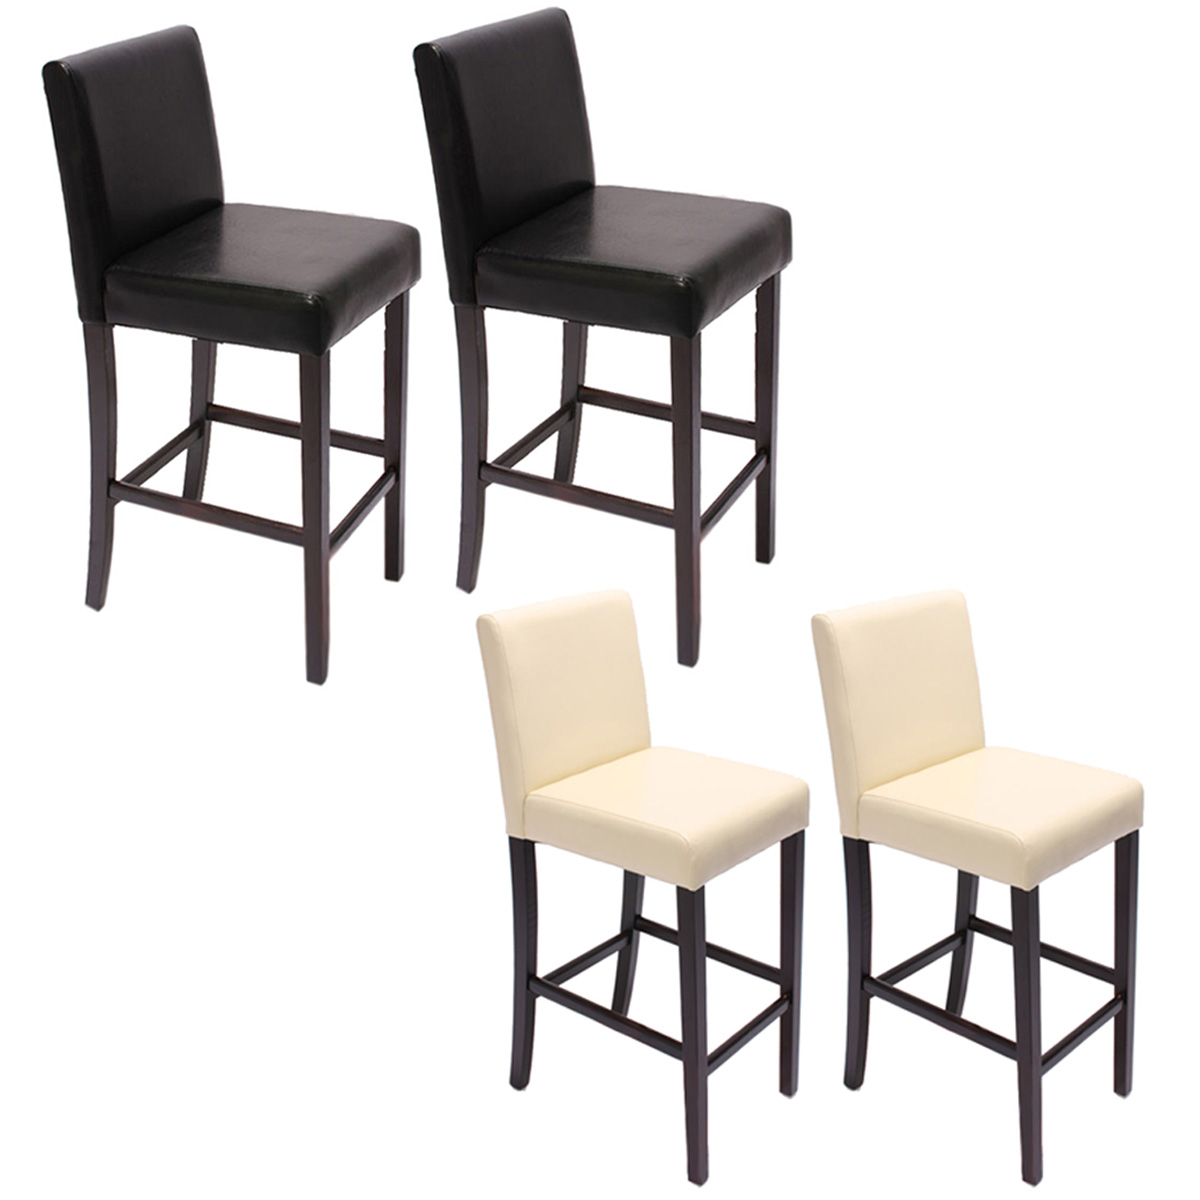 2x barhocker barstuhl m02 kunstleder dunkle f e schwarz creme ebay. Black Bedroom Furniture Sets. Home Design Ideas